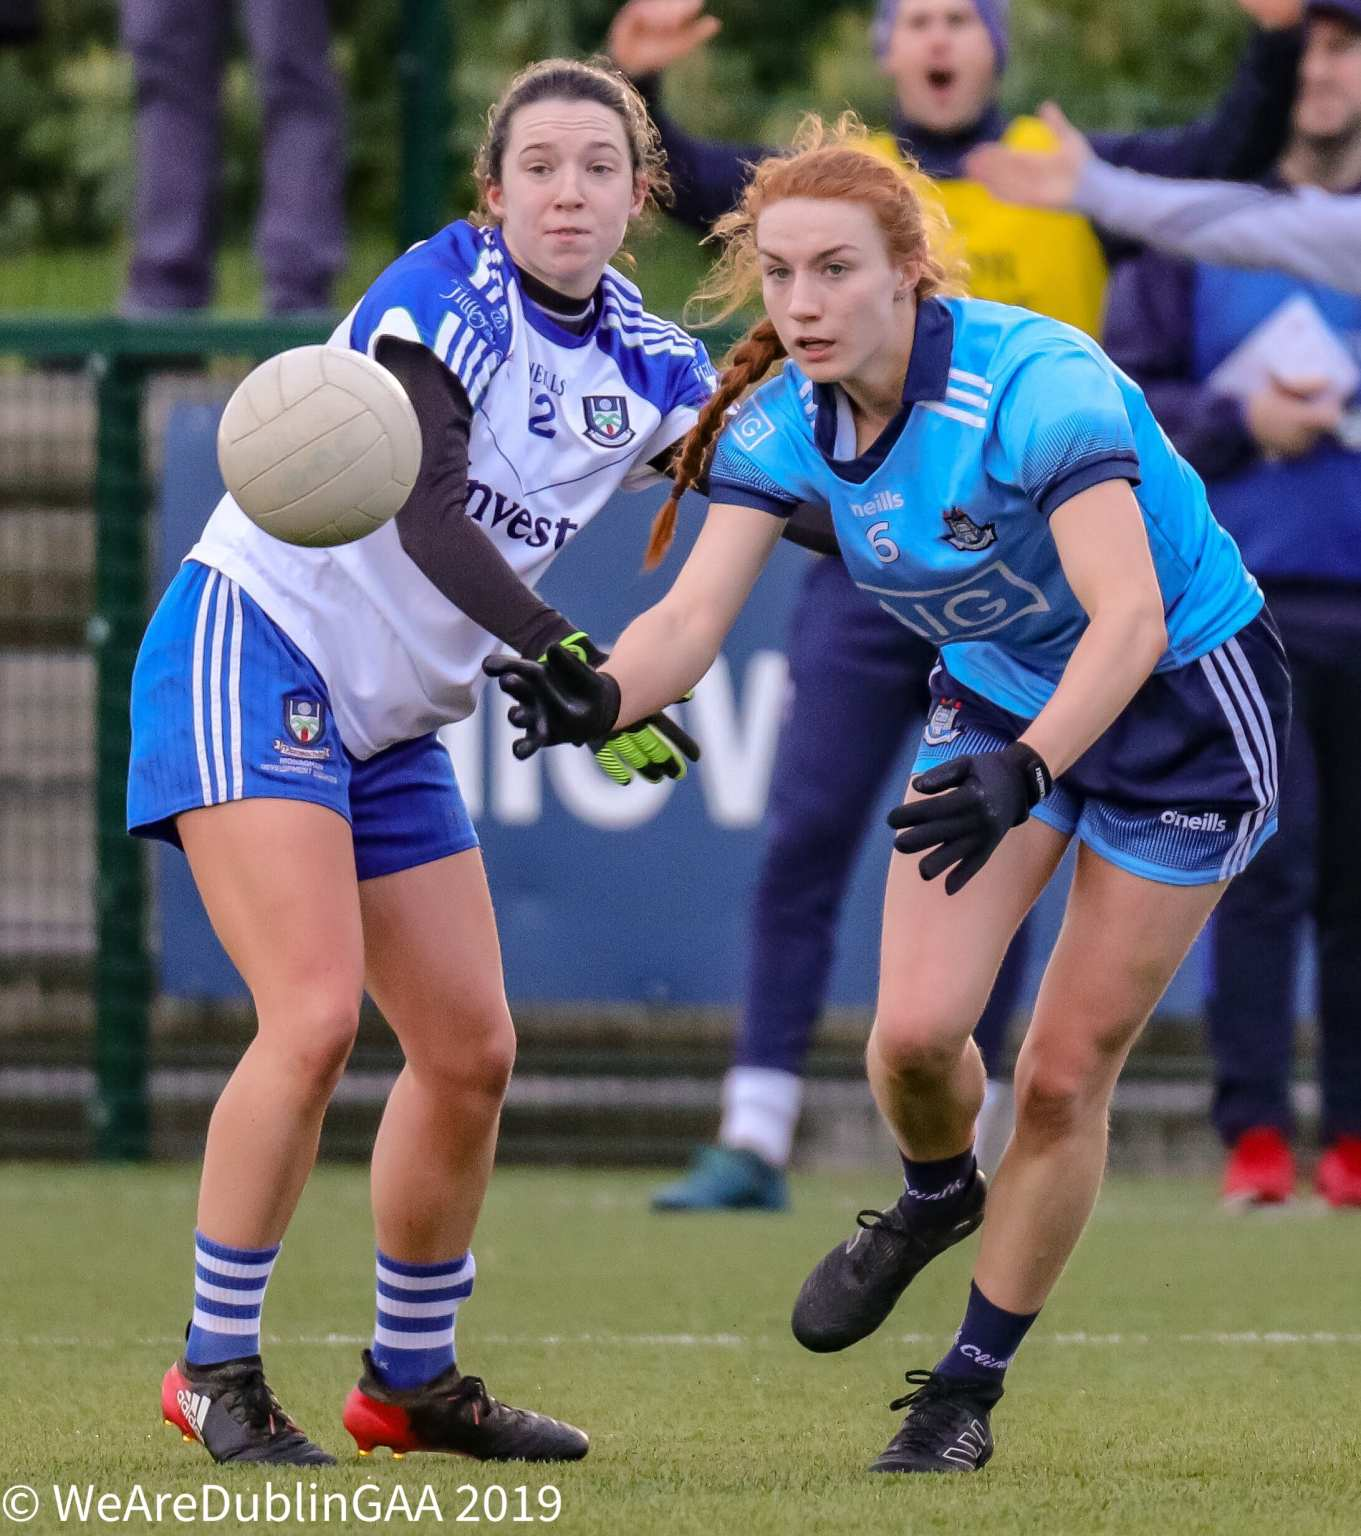 A Dublin and Monaghan Ladies footballer in action during a League game both sides meet tomorrow in the 2019 TG4 All Ireland Championship